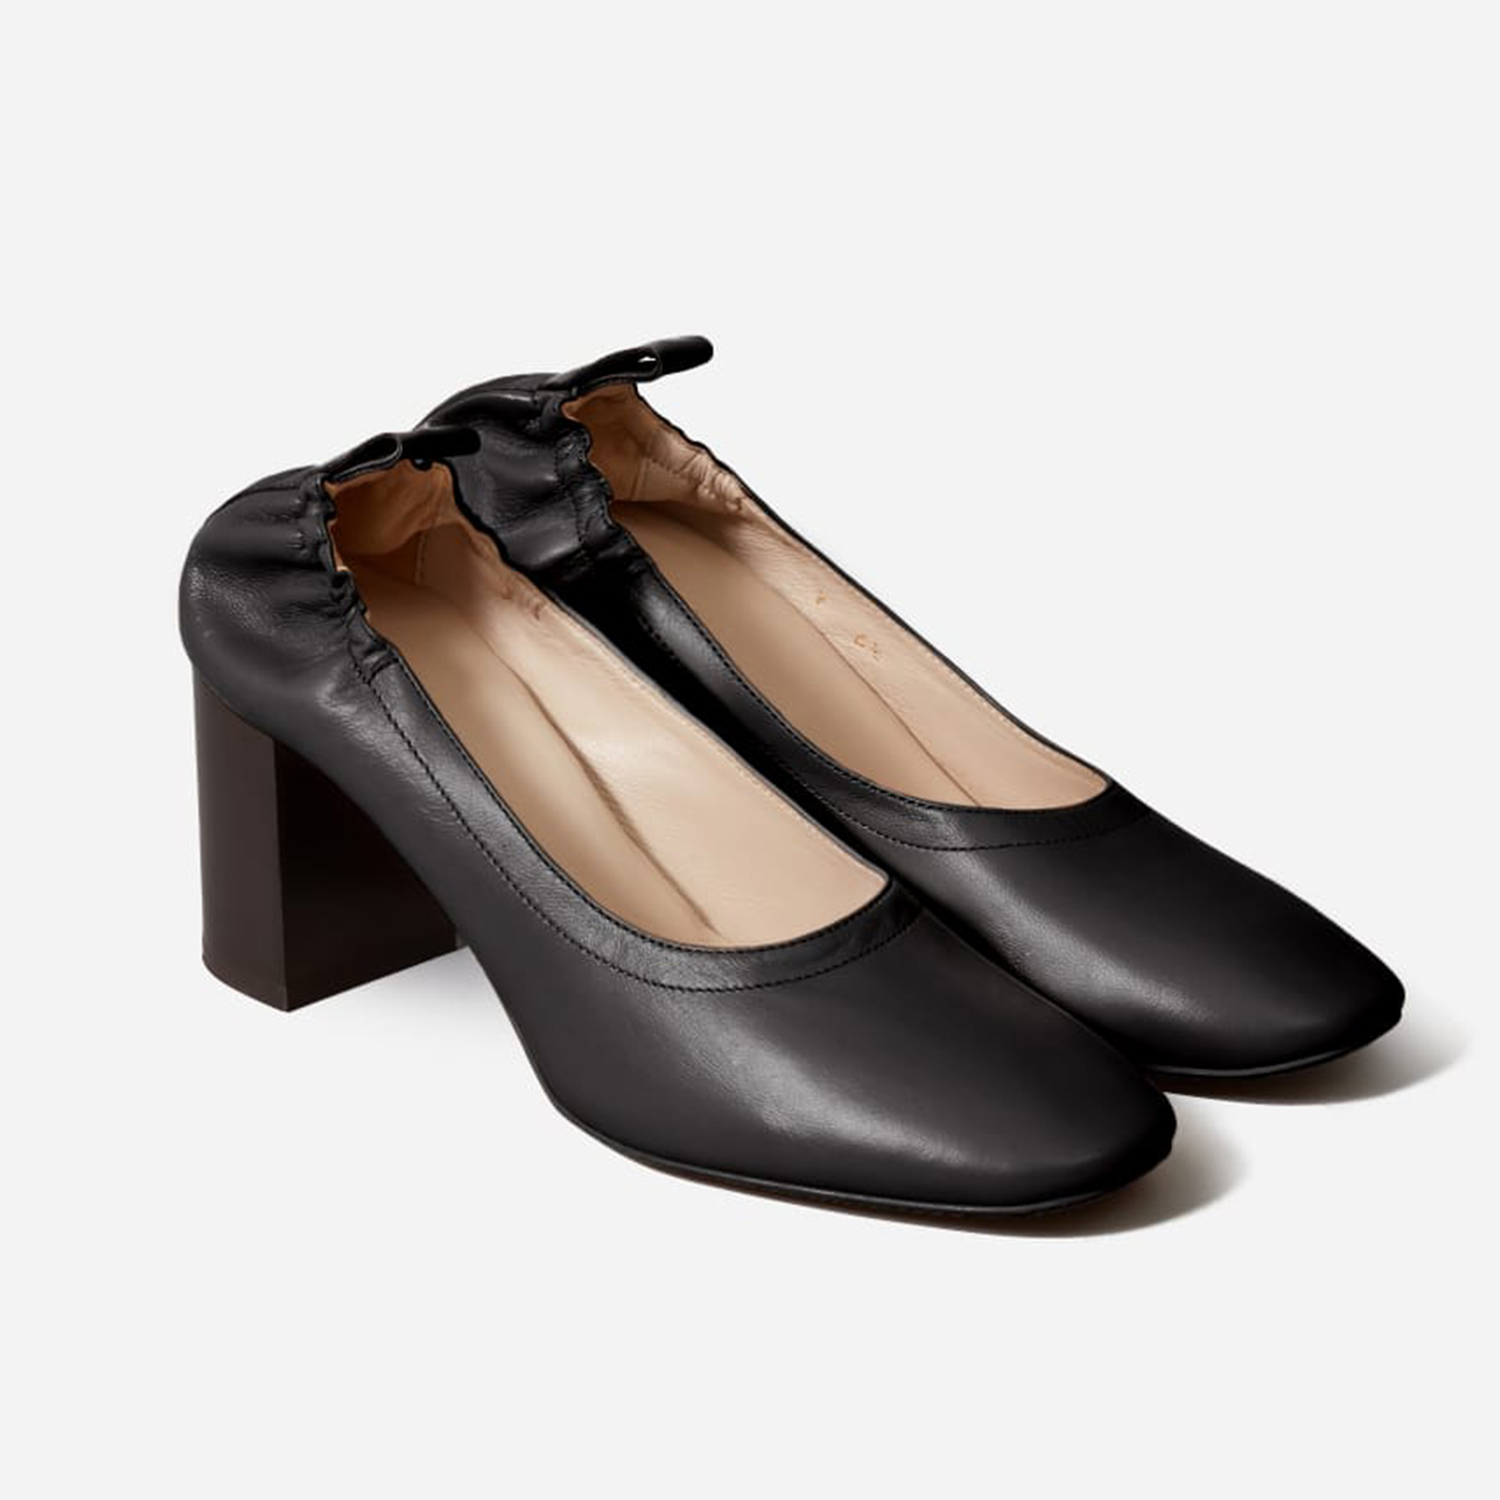 Everlane The Day High Heel Black Stack